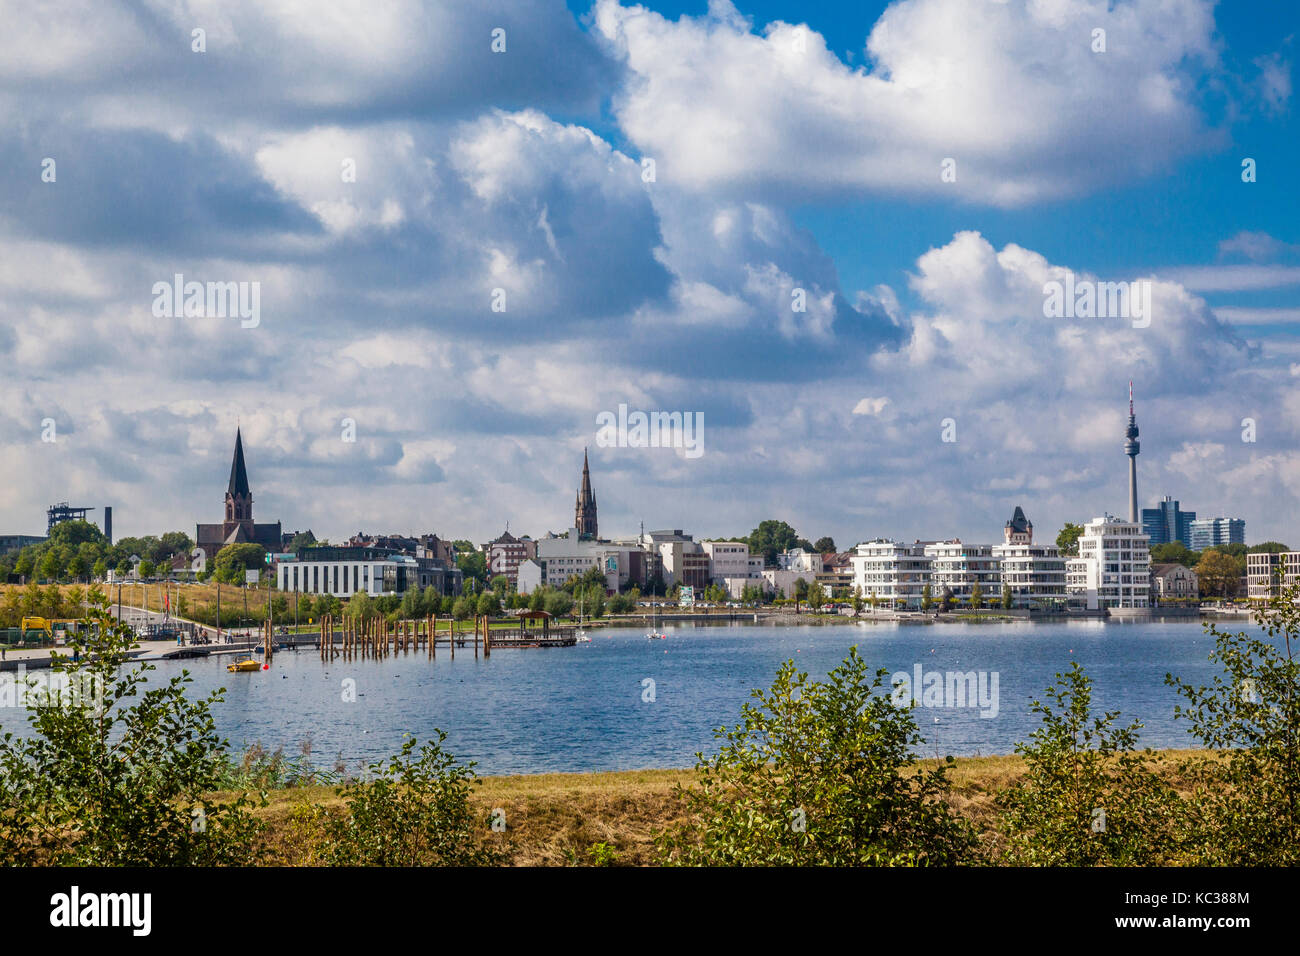 Germany, North Rhine-Westphalia, Dortmund-Hörde, view of Phonix Lake, a new recreational area, urban redevelopment - Stock Image